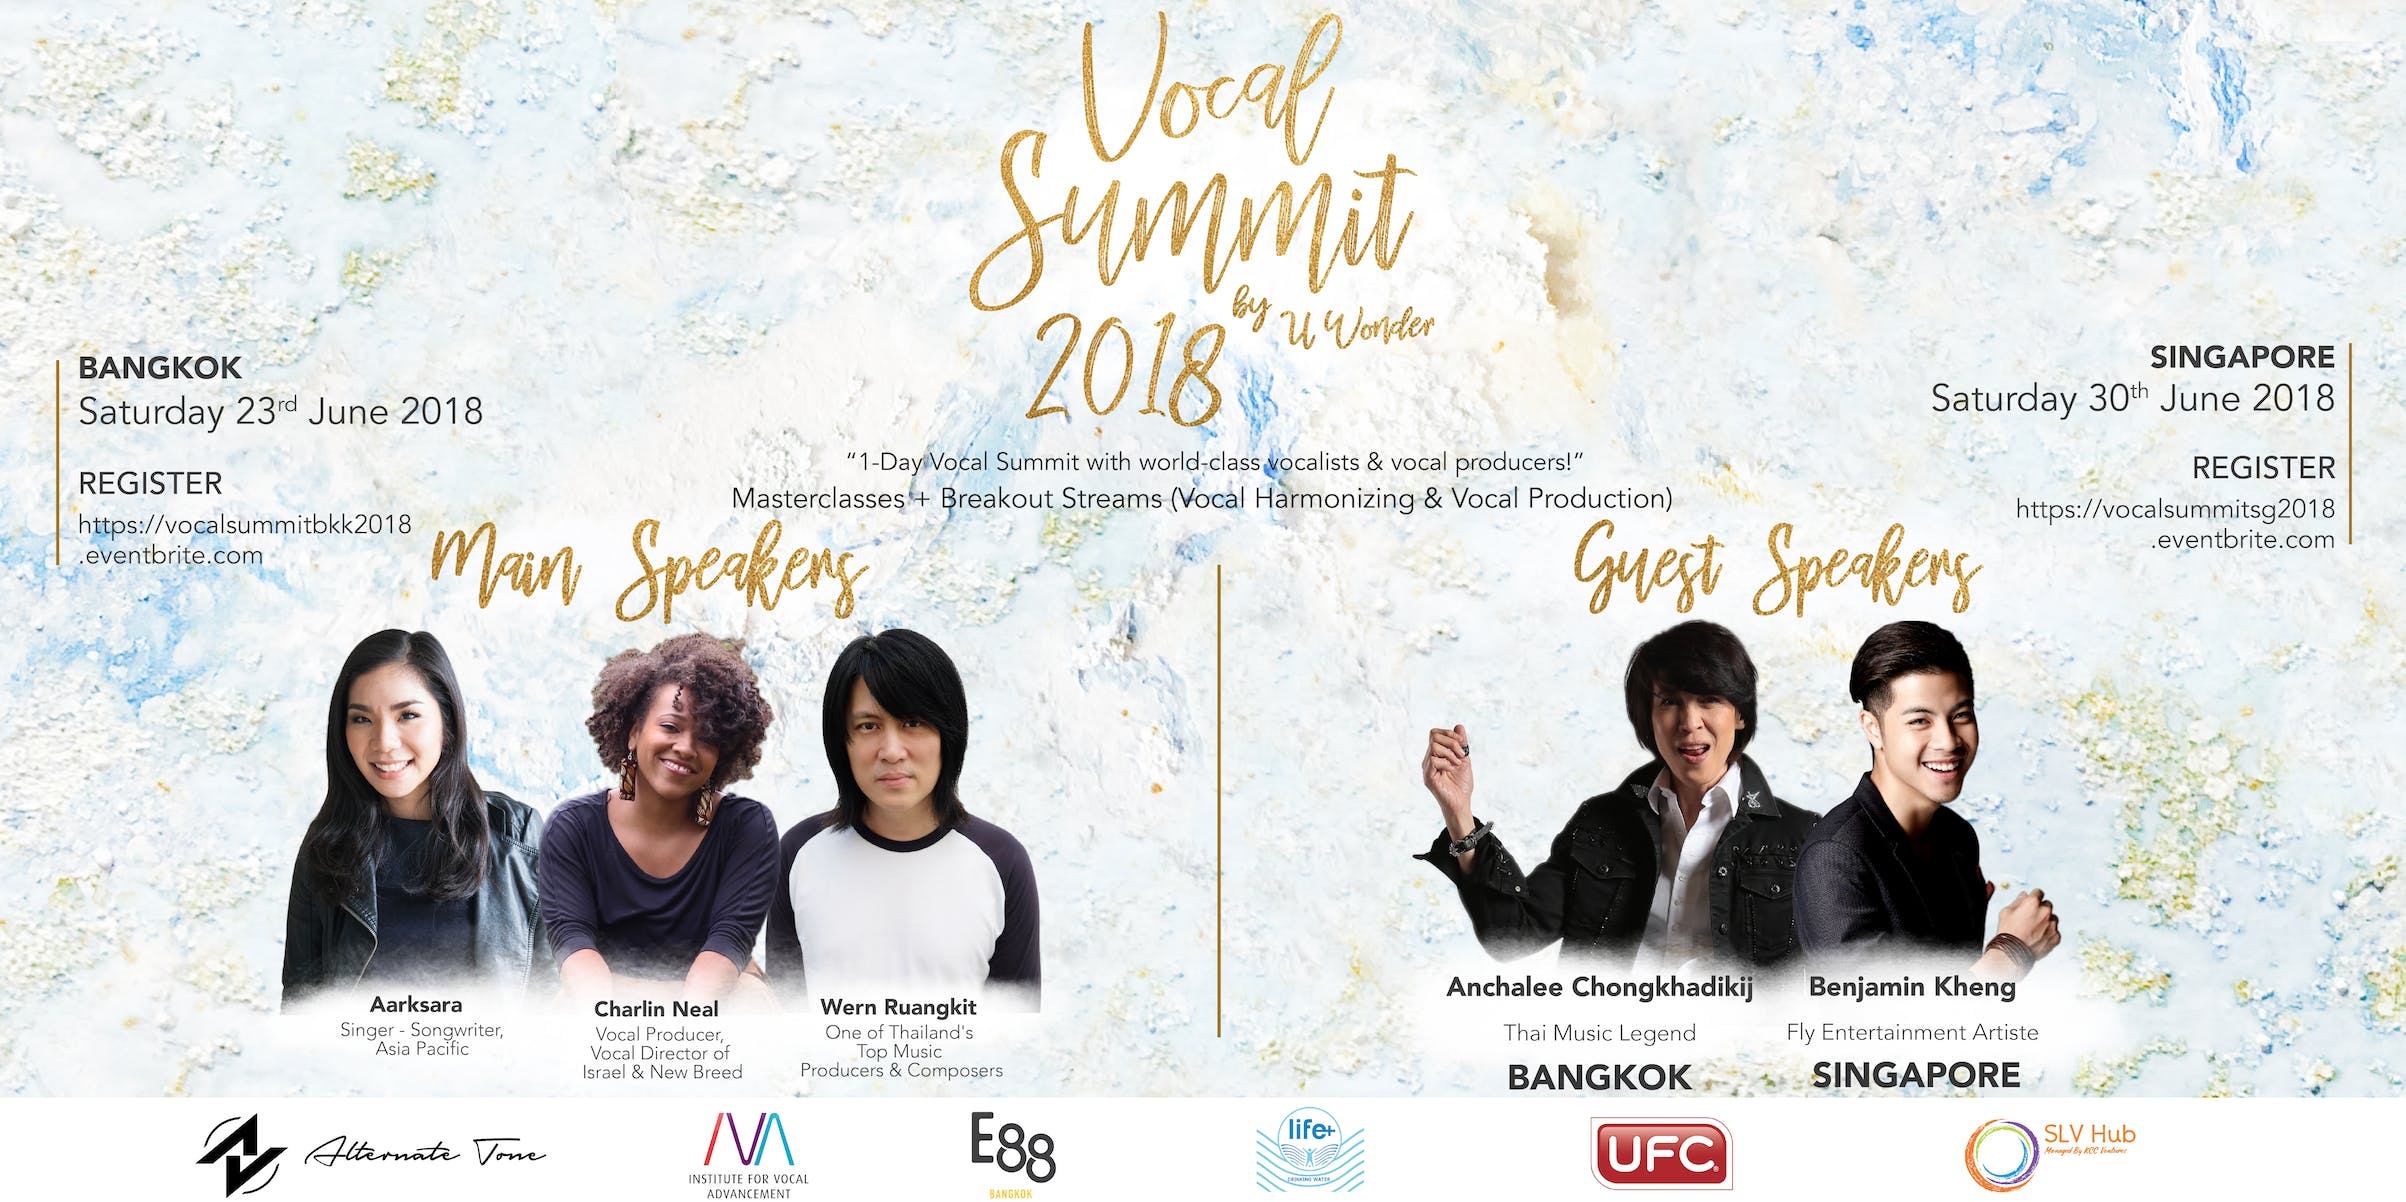 Vocal Summit 2018 (Singapore) by U Wonder